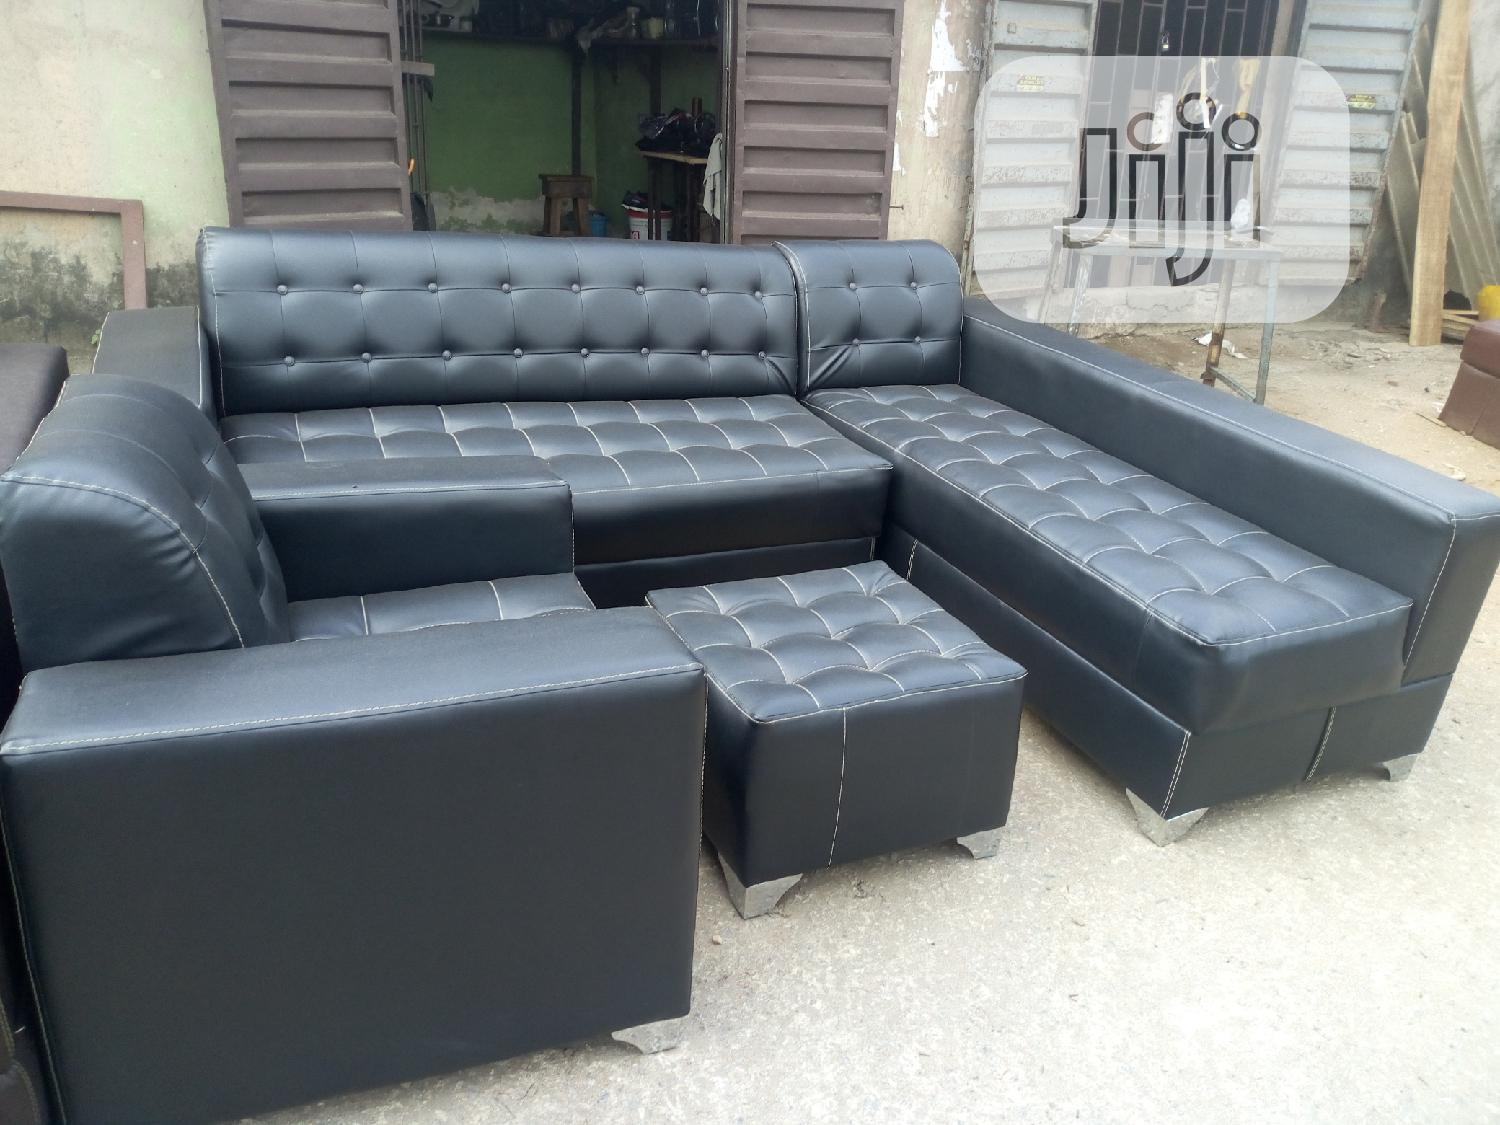 L Shaped Sofa Wit Single Comfortable and Convinent for Relaxation